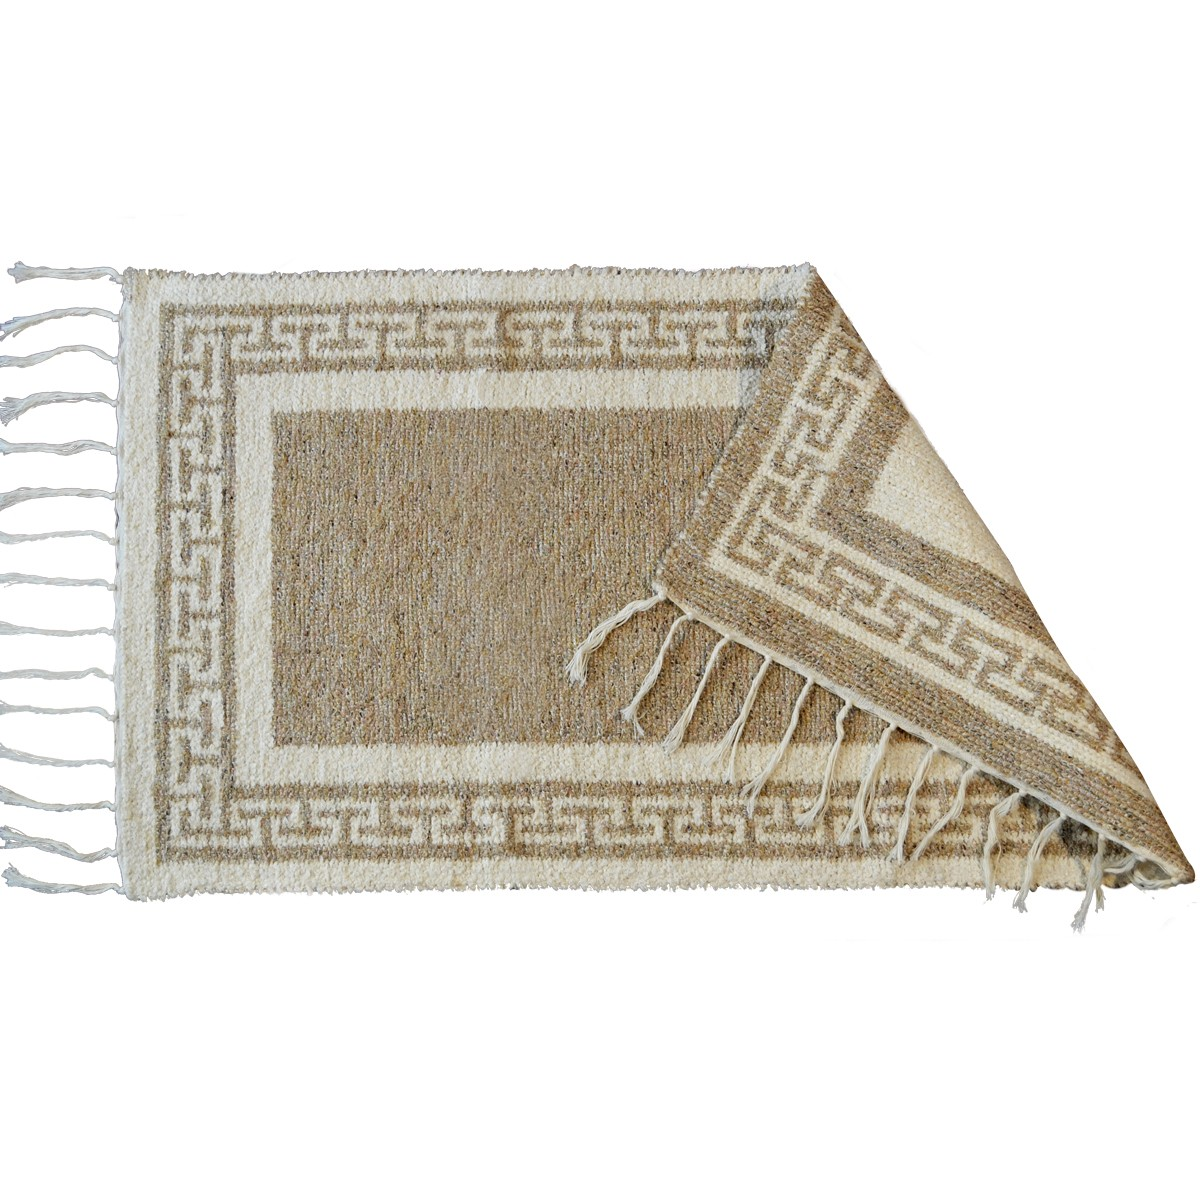 Greek Key Two Sided Cotton Rug, Beige